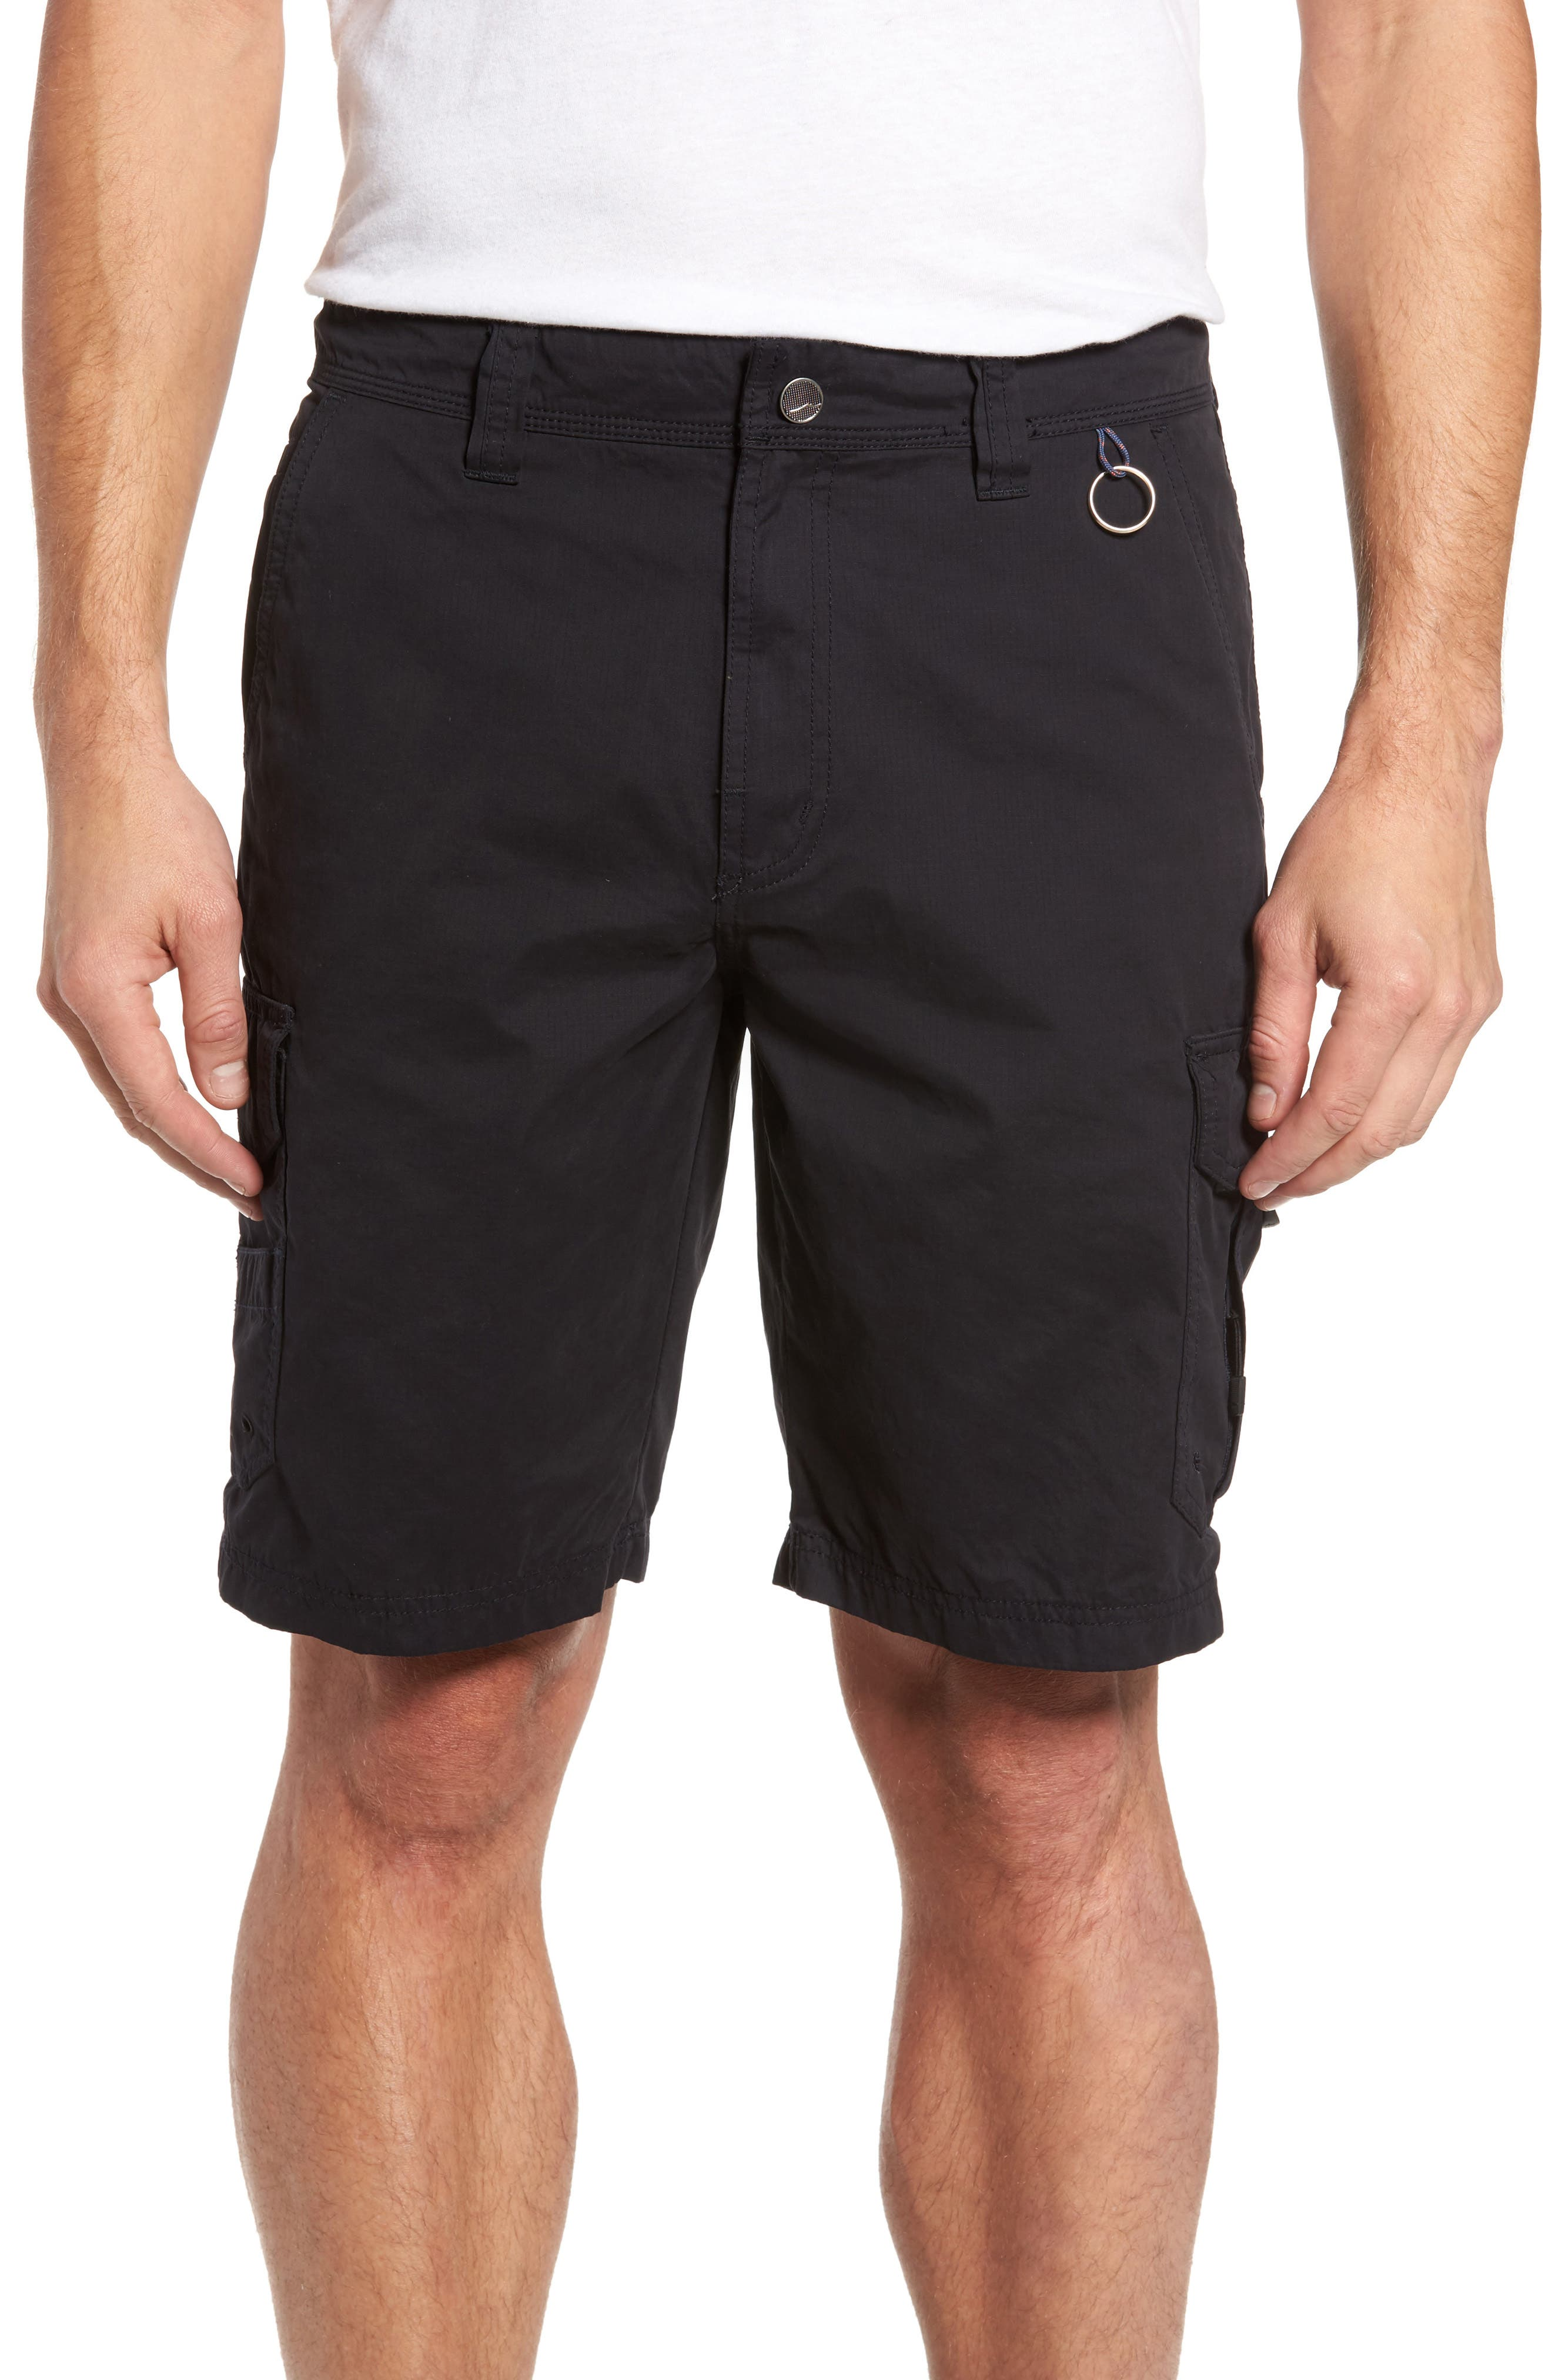 Catch & Release Regular Fit Hybrid Cargo Shorts,                         Main,                         color, Charcoal